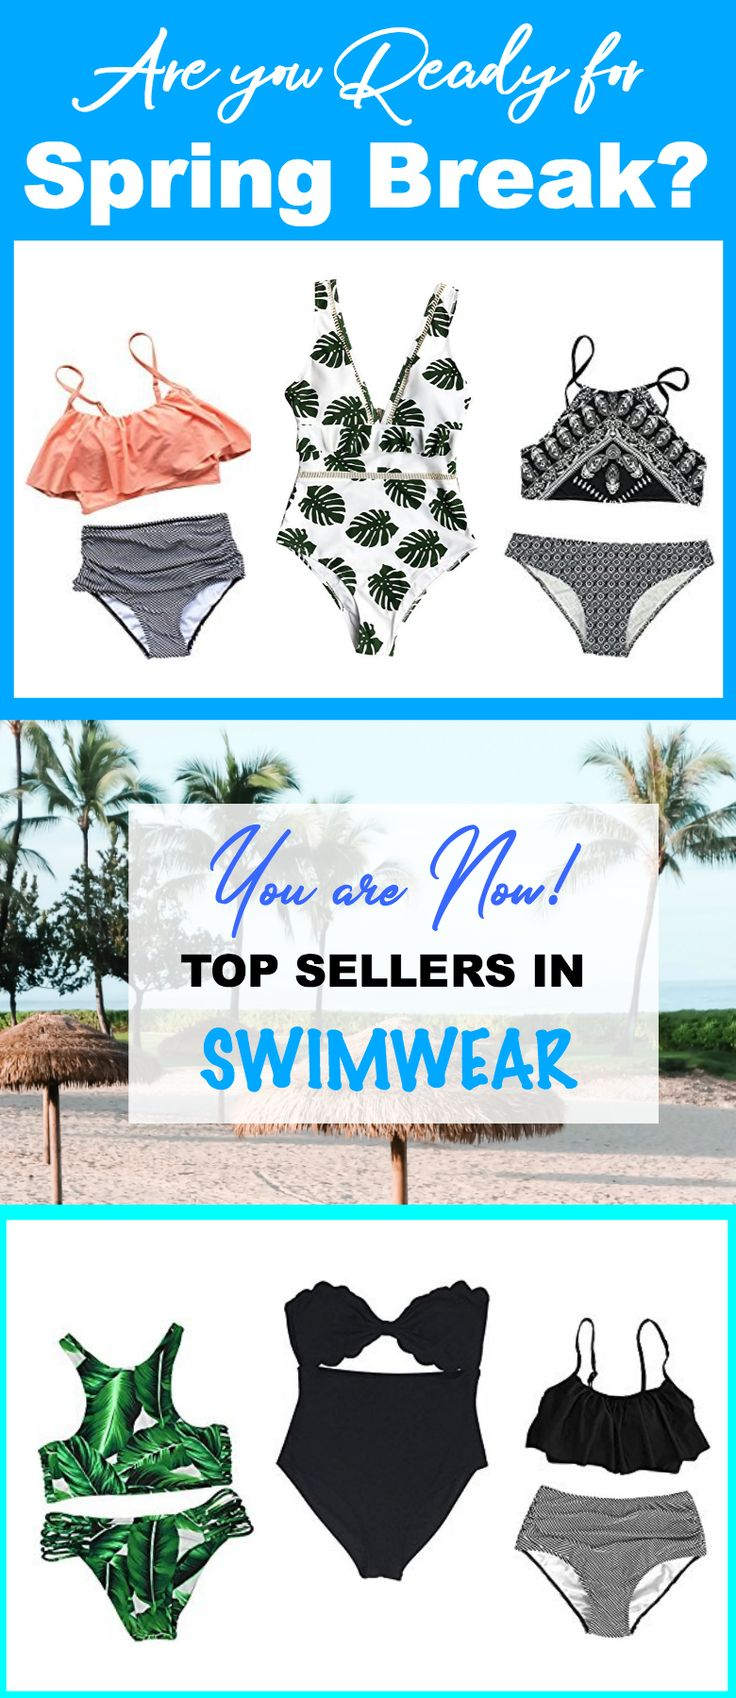 Get Spring Break ready with these gorgeous Bathing Suits for teens, for moms, tankinis, one-pieces, for big bust, for anyone! Amazon has all of these and TONS more, so check them out and get all of your warm weather accessories, too! #swimwear #swimsuit #spring #ideas #college #girls #love #cute #summer #beach #vacation #suits #ad #affiliate